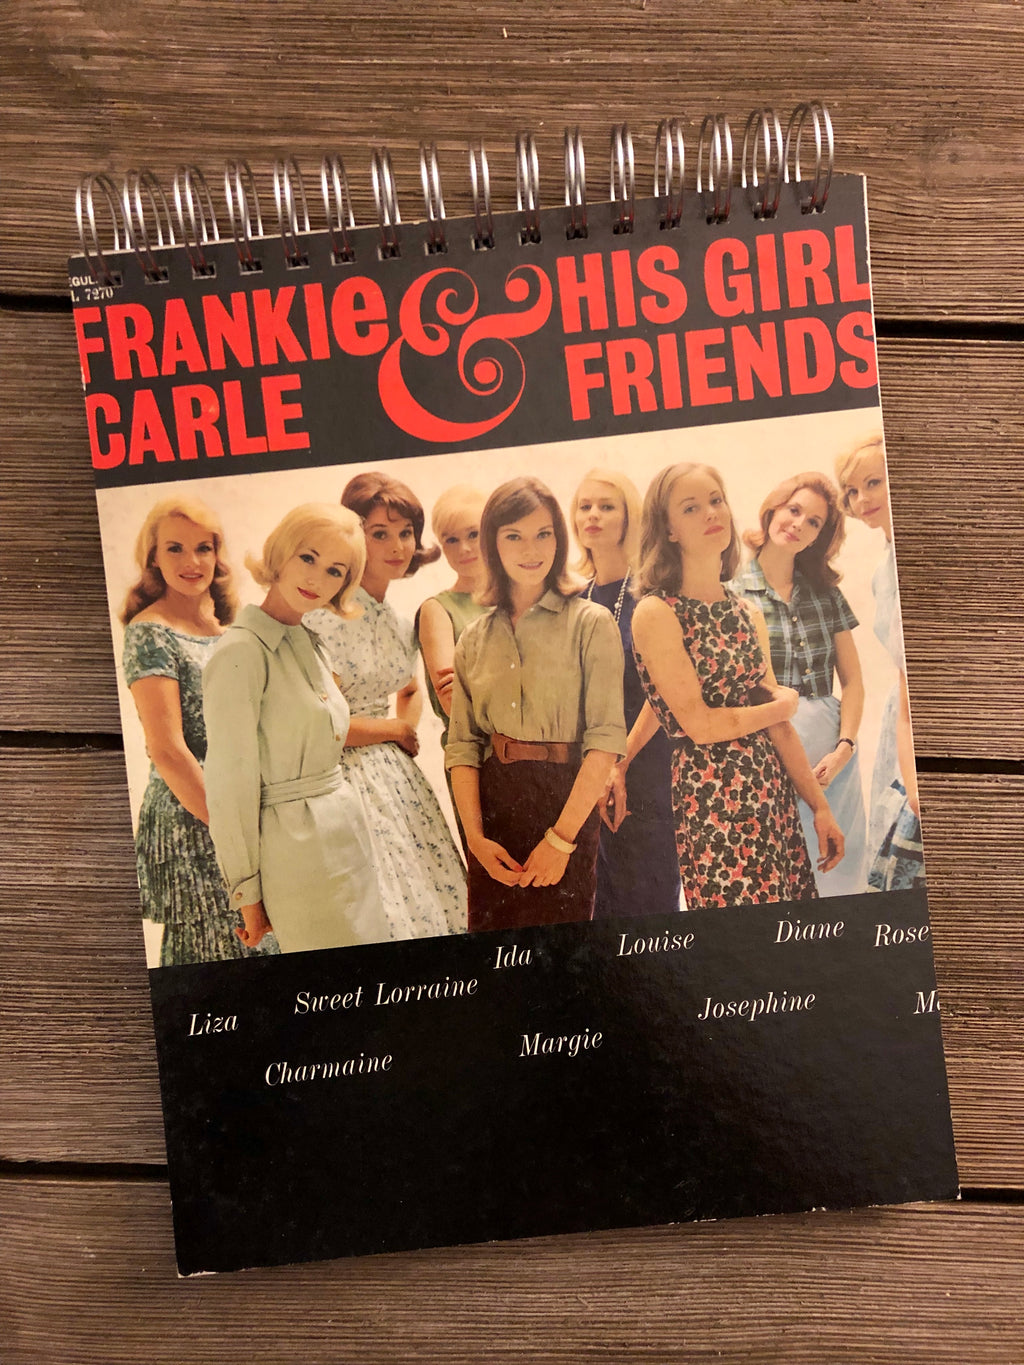 Frankie Carle & His Girl Friends - Notebook